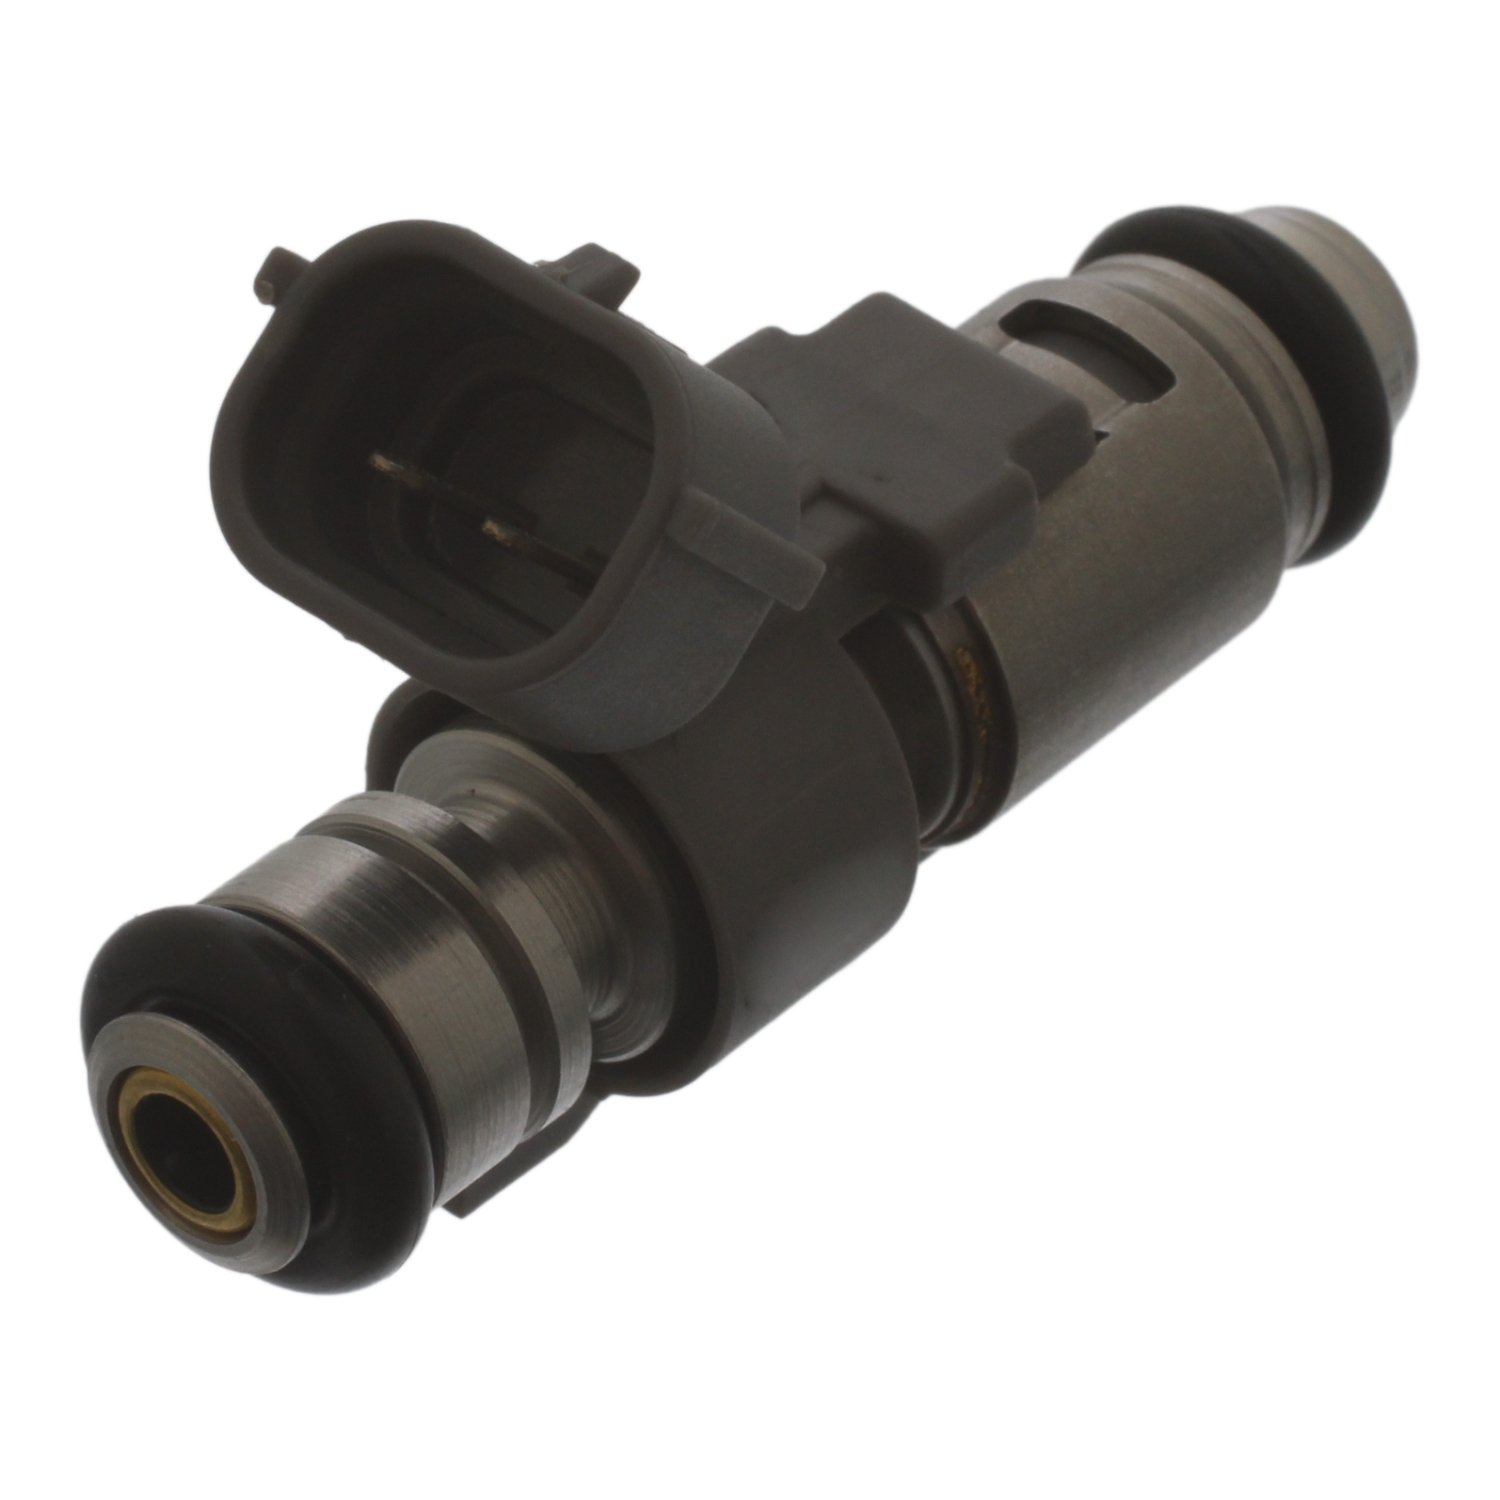 febi bilstein 38220 injector with seal rings  - Pack of 1